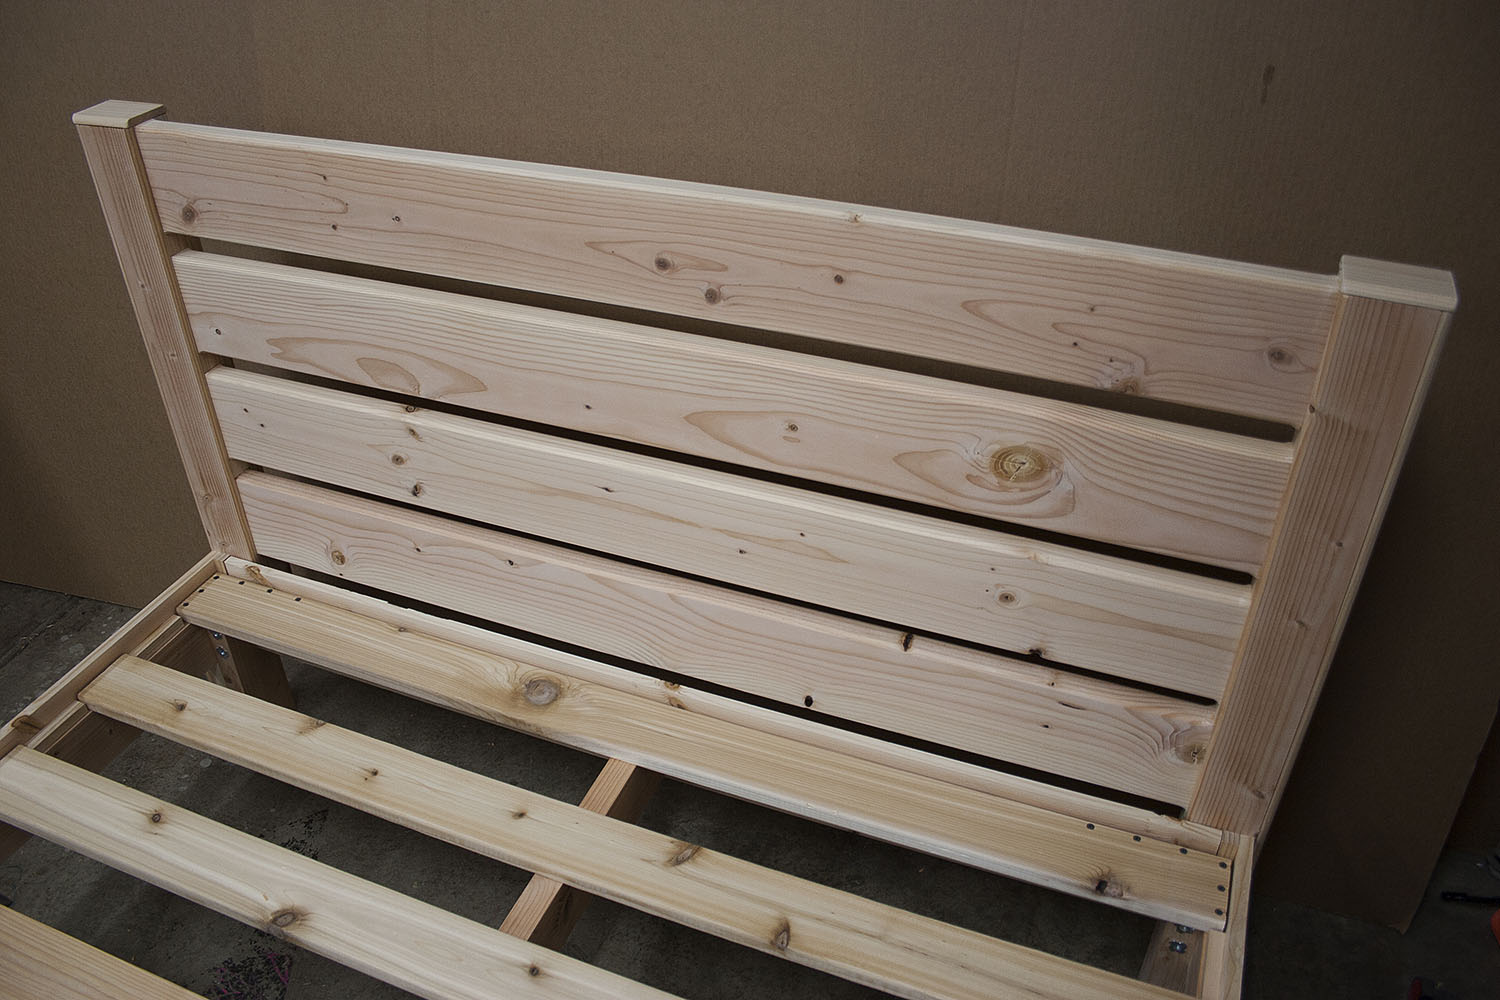 Horizontal-slat fir headboard